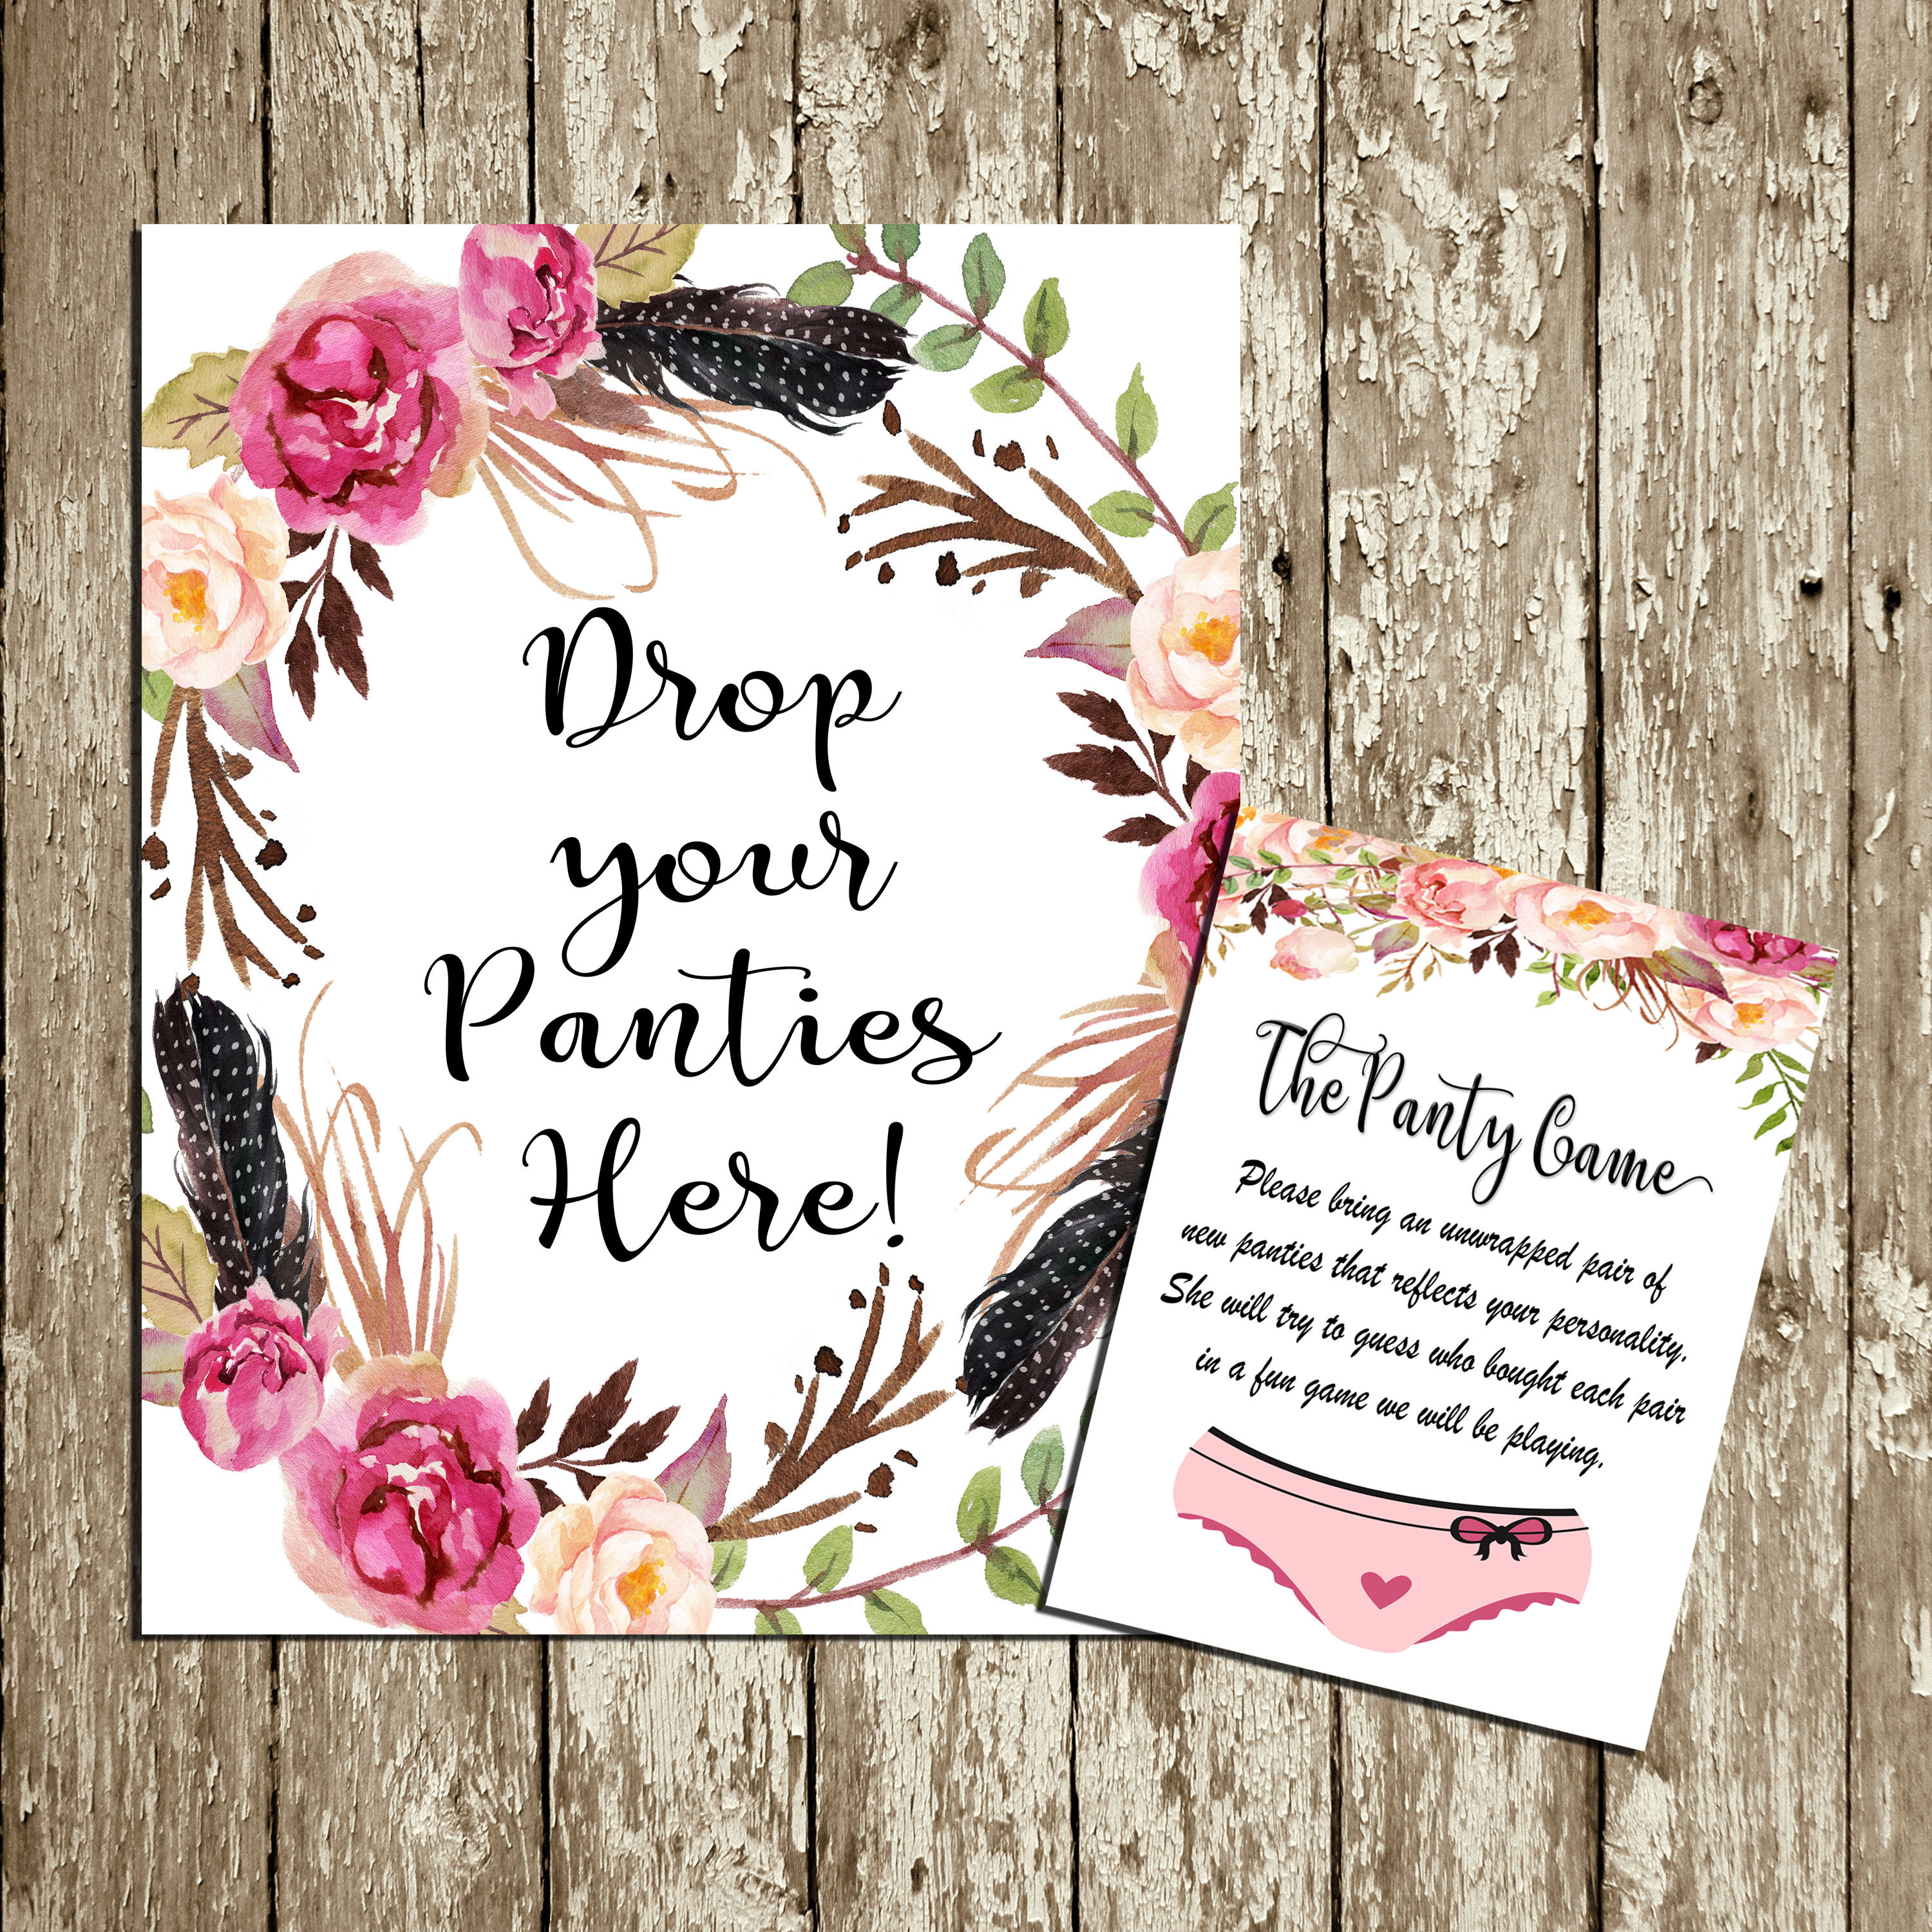 Drop Your Panties Here Printable Boho Lingerie Sign Panty Game Etsy